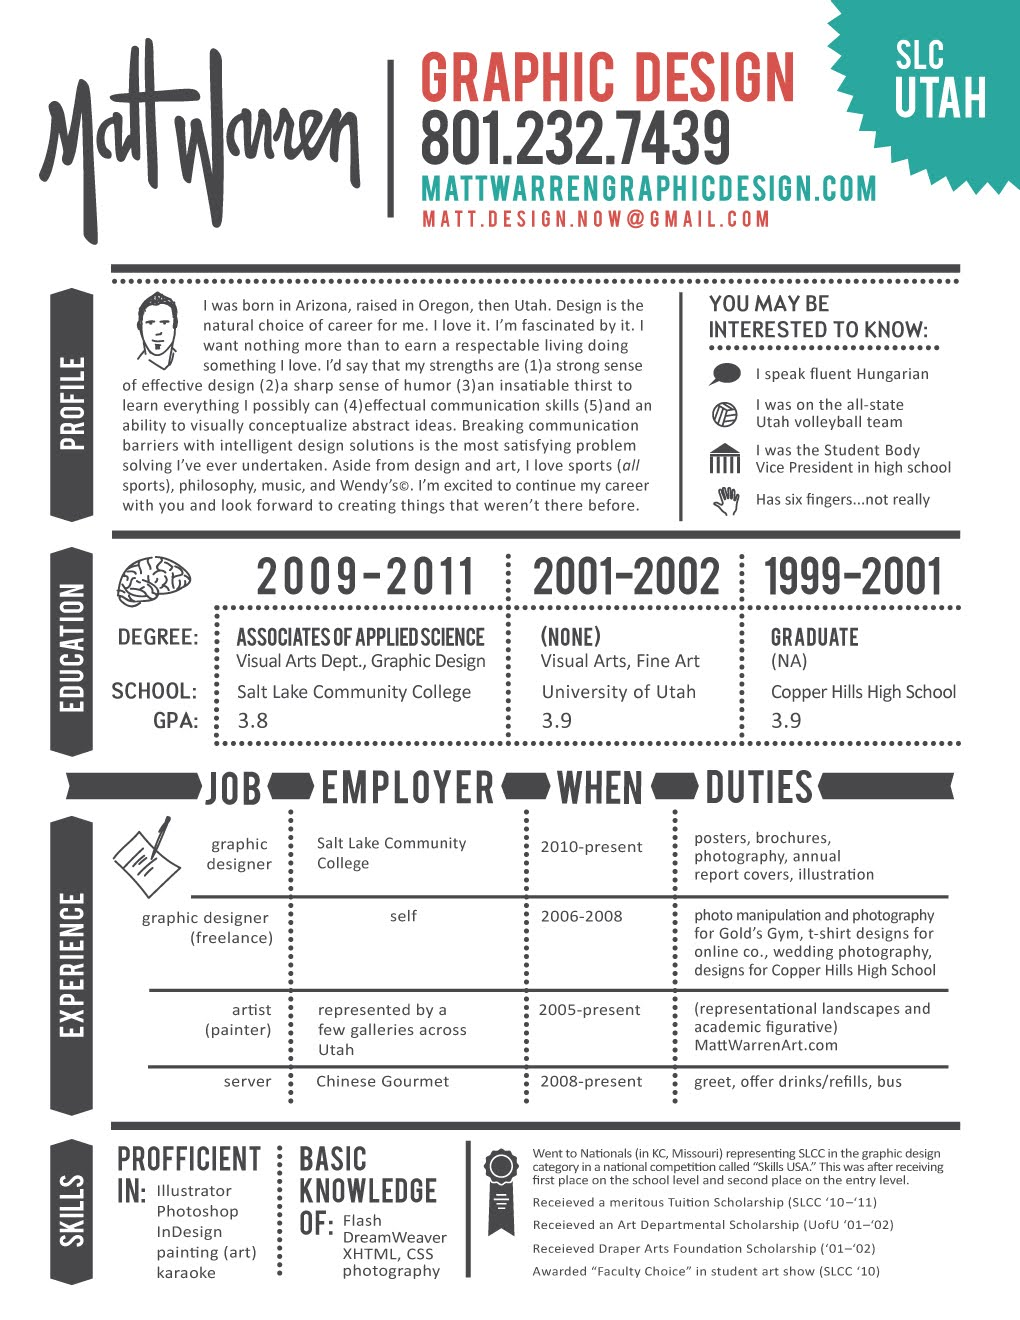 Opposenewapstandardsus  Sweet  Images About Hire Me On Pinterest  Graphic Designer Resume  With Inspiring  Images About Hire Me On Pinterest  Graphic Designer Resume Resume Design And Resume With Comely Update Your Resume Also Roofer Resume In Addition Additional Skills For A Resume And Profile For A Resume As Well As Entry Level Resume Example Additionally Resume For Self Employed From Pinterestcom With Opposenewapstandardsus  Inspiring  Images About Hire Me On Pinterest  Graphic Designer Resume  With Comely  Images About Hire Me On Pinterest  Graphic Designer Resume Resume Design And Resume And Sweet Update Your Resume Also Roofer Resume In Addition Additional Skills For A Resume From Pinterestcom